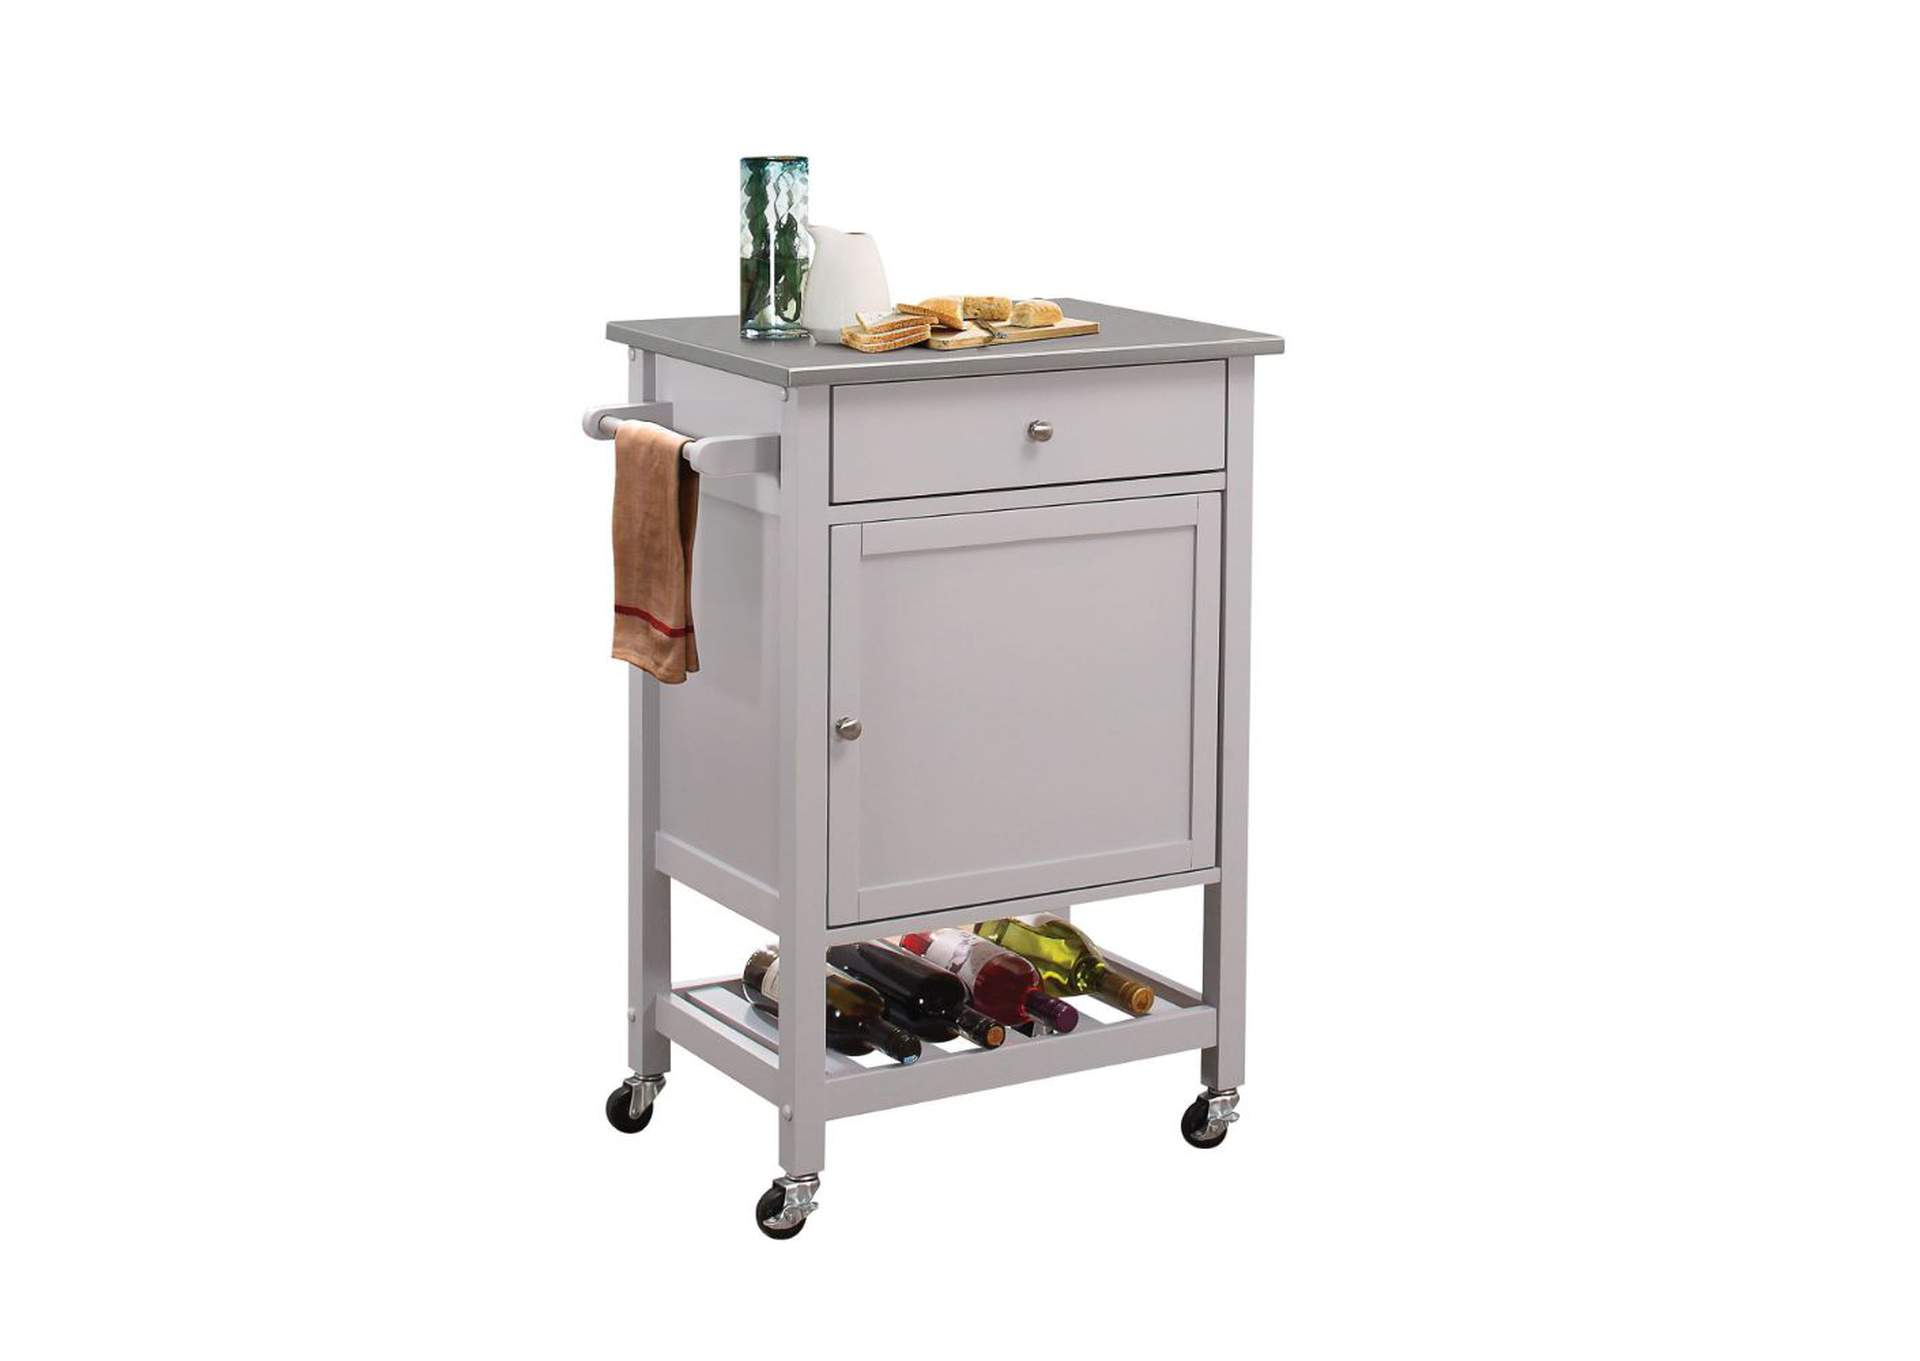 Hoogzen Stainless Steel & Gray Kitchen Cart,Acme